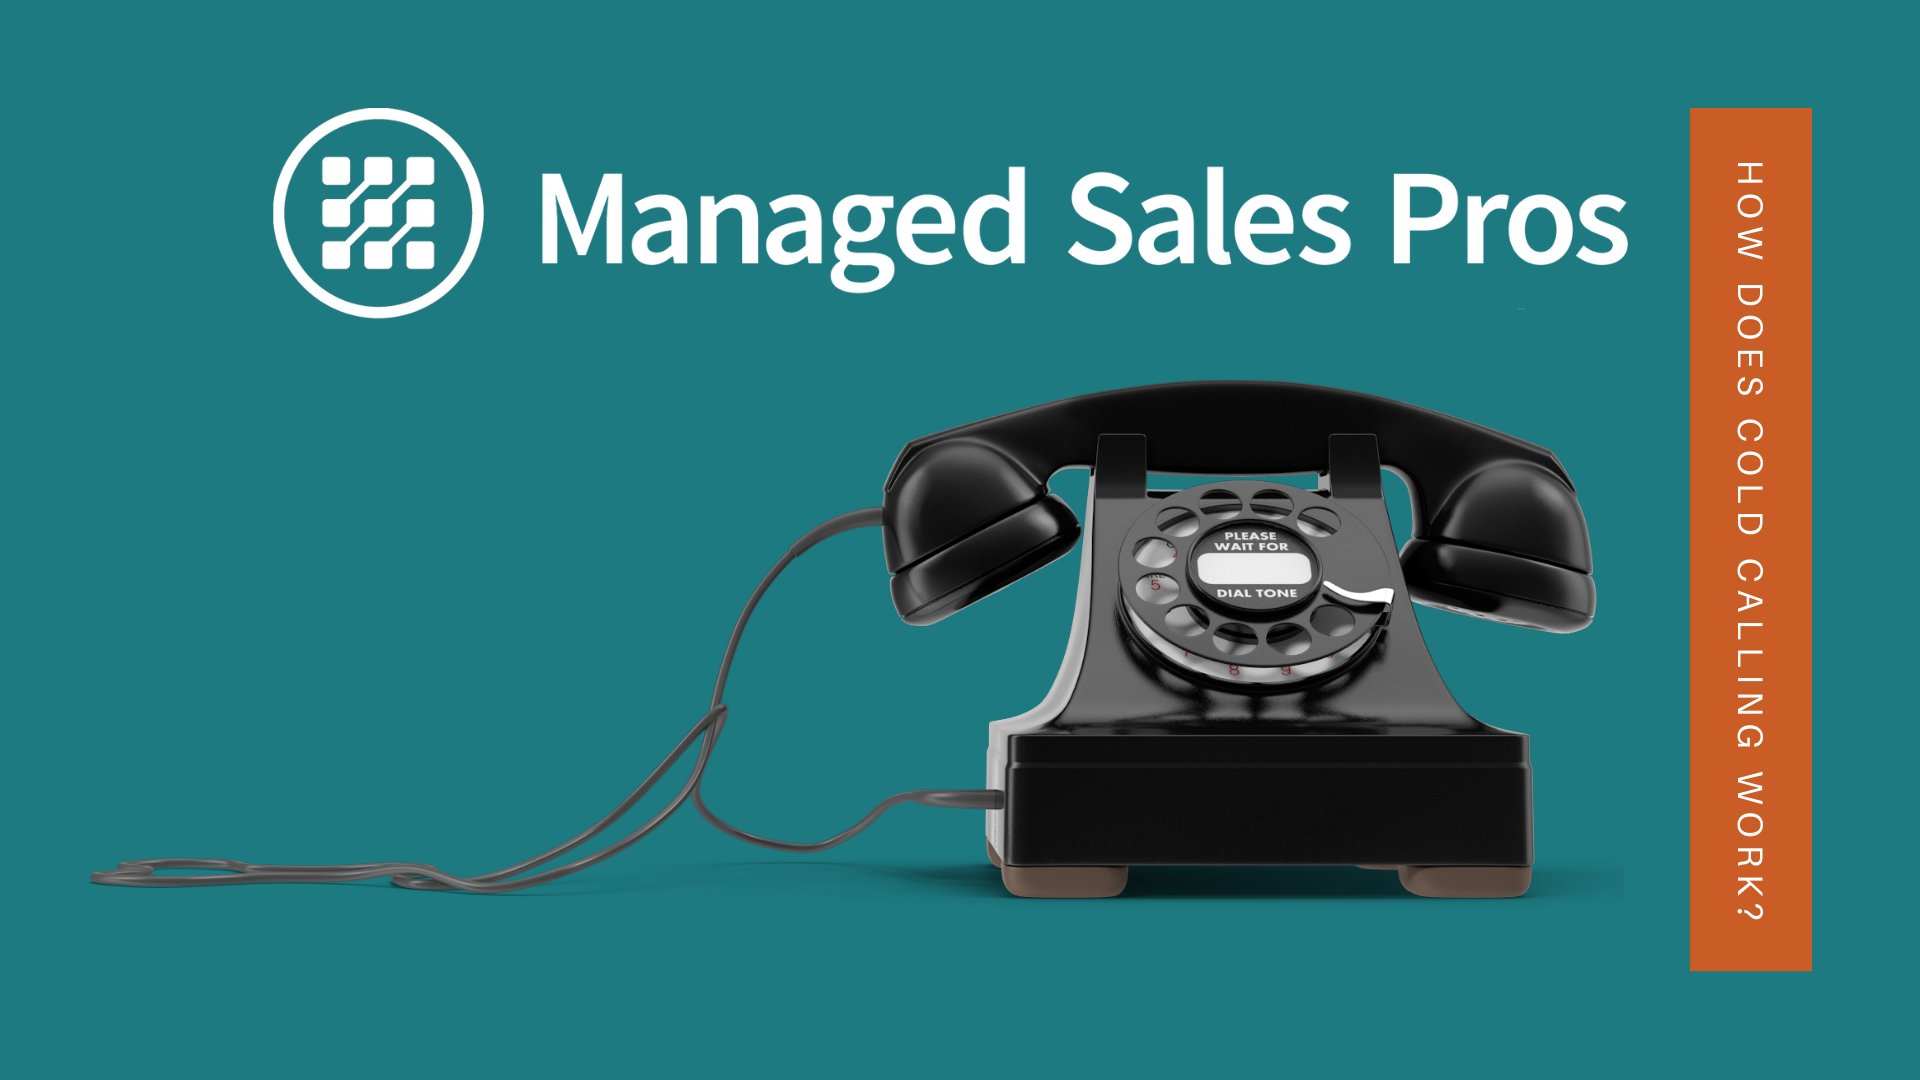 MSP Cold Calling with Managed Sales Pros - How Does Cold Calling Work?